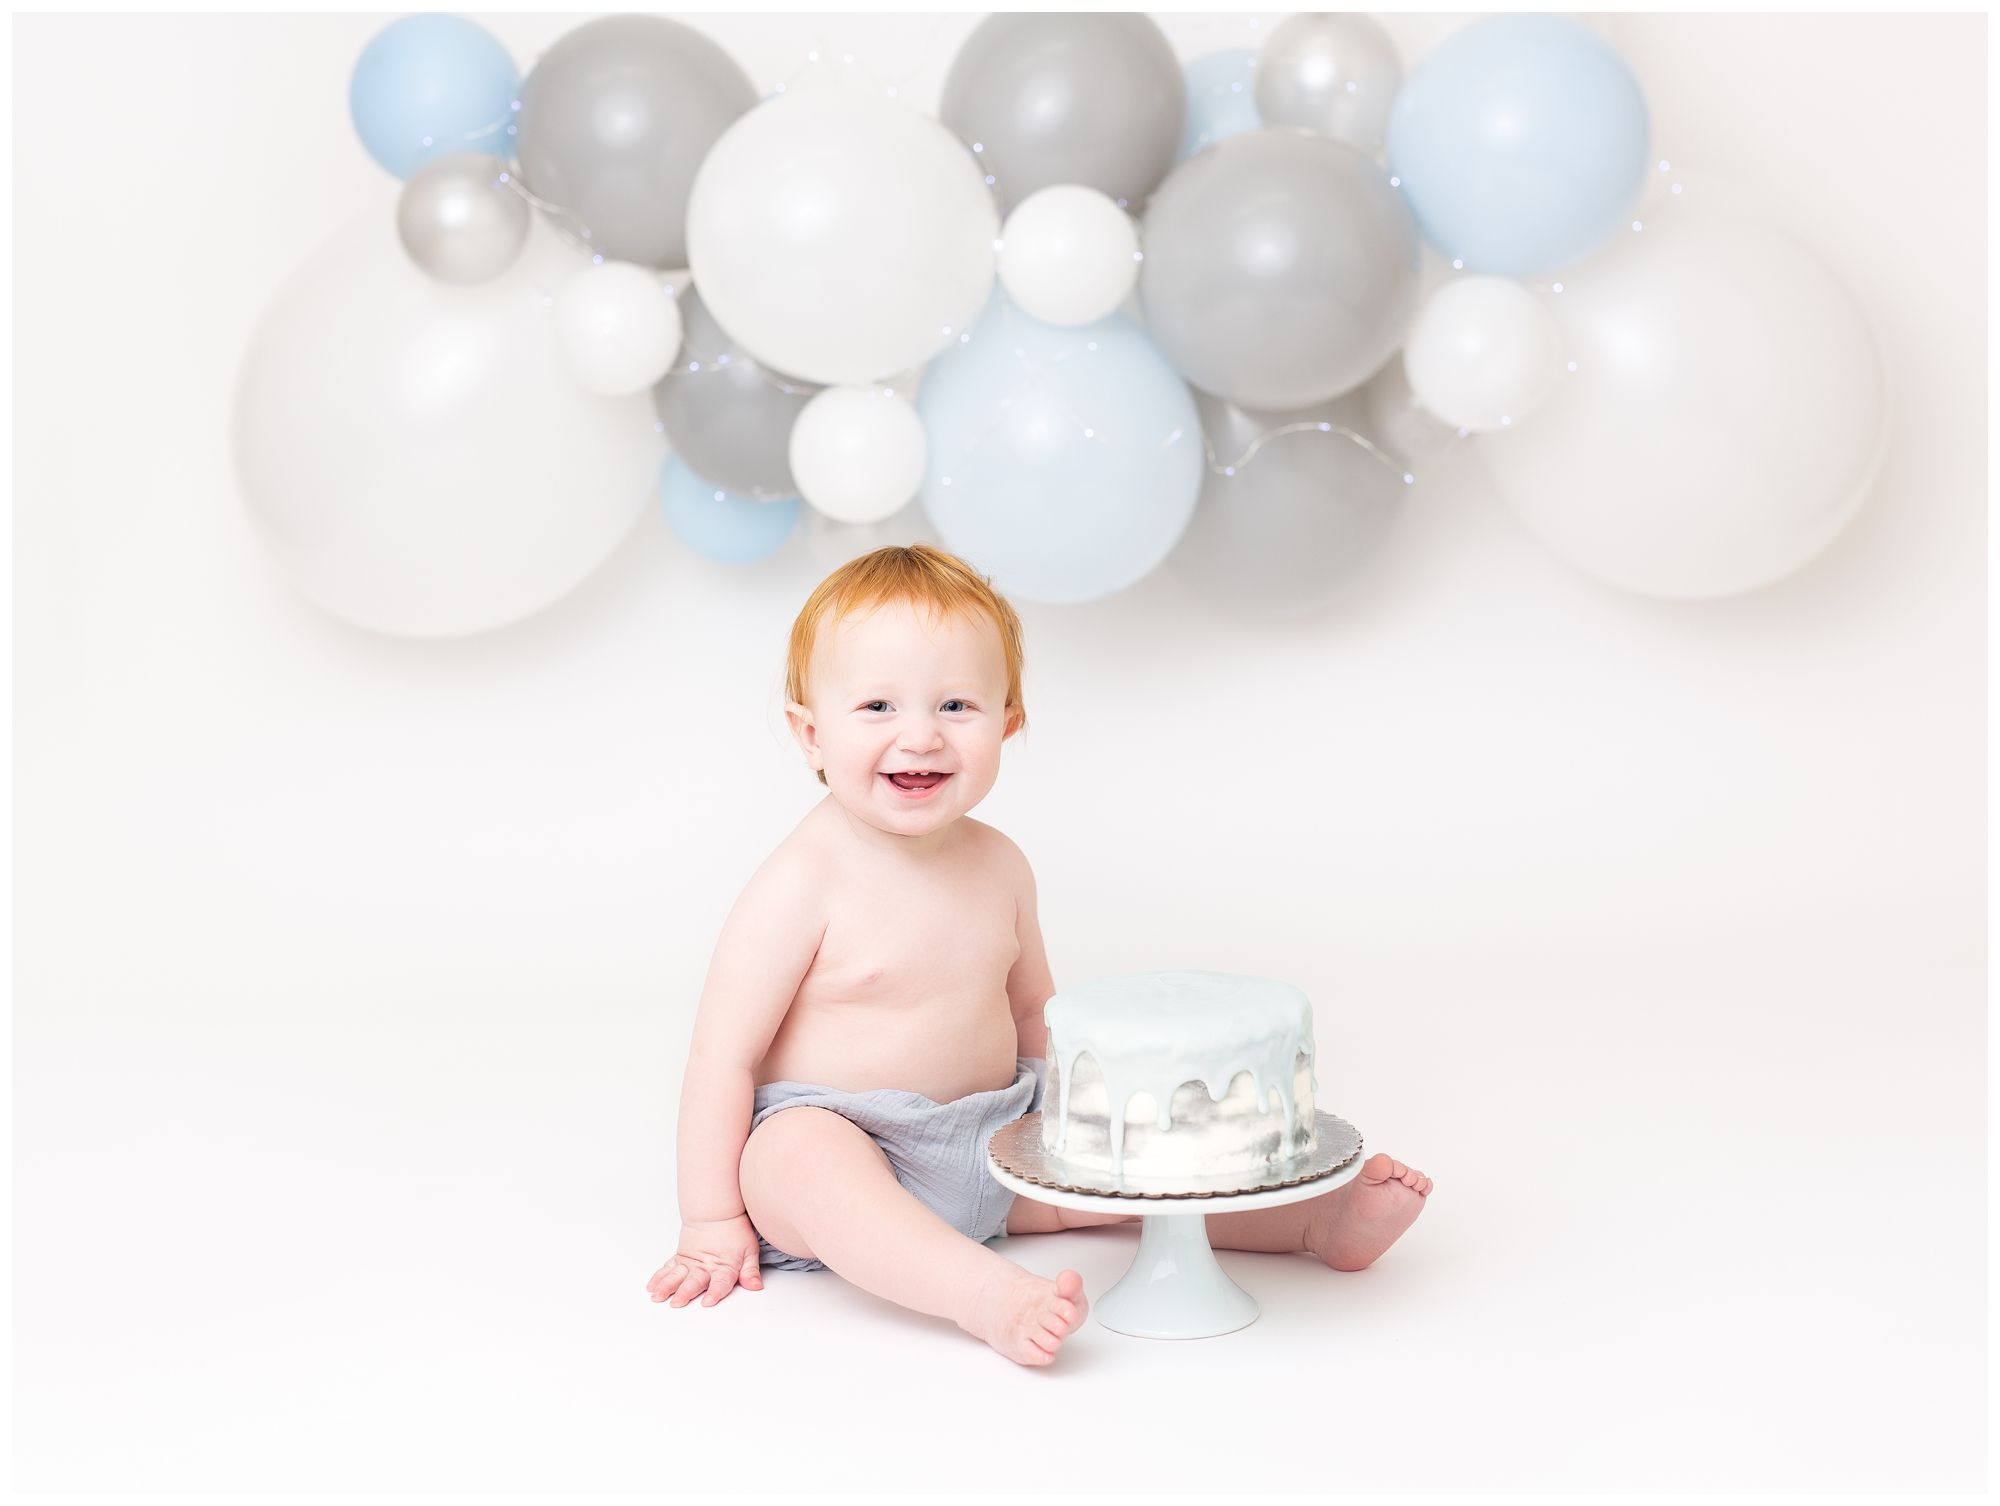 Blue Grey White balloon garland with grey blue water color cake | Smash cake boy, Cake smash pictures, Cake smash inspiration